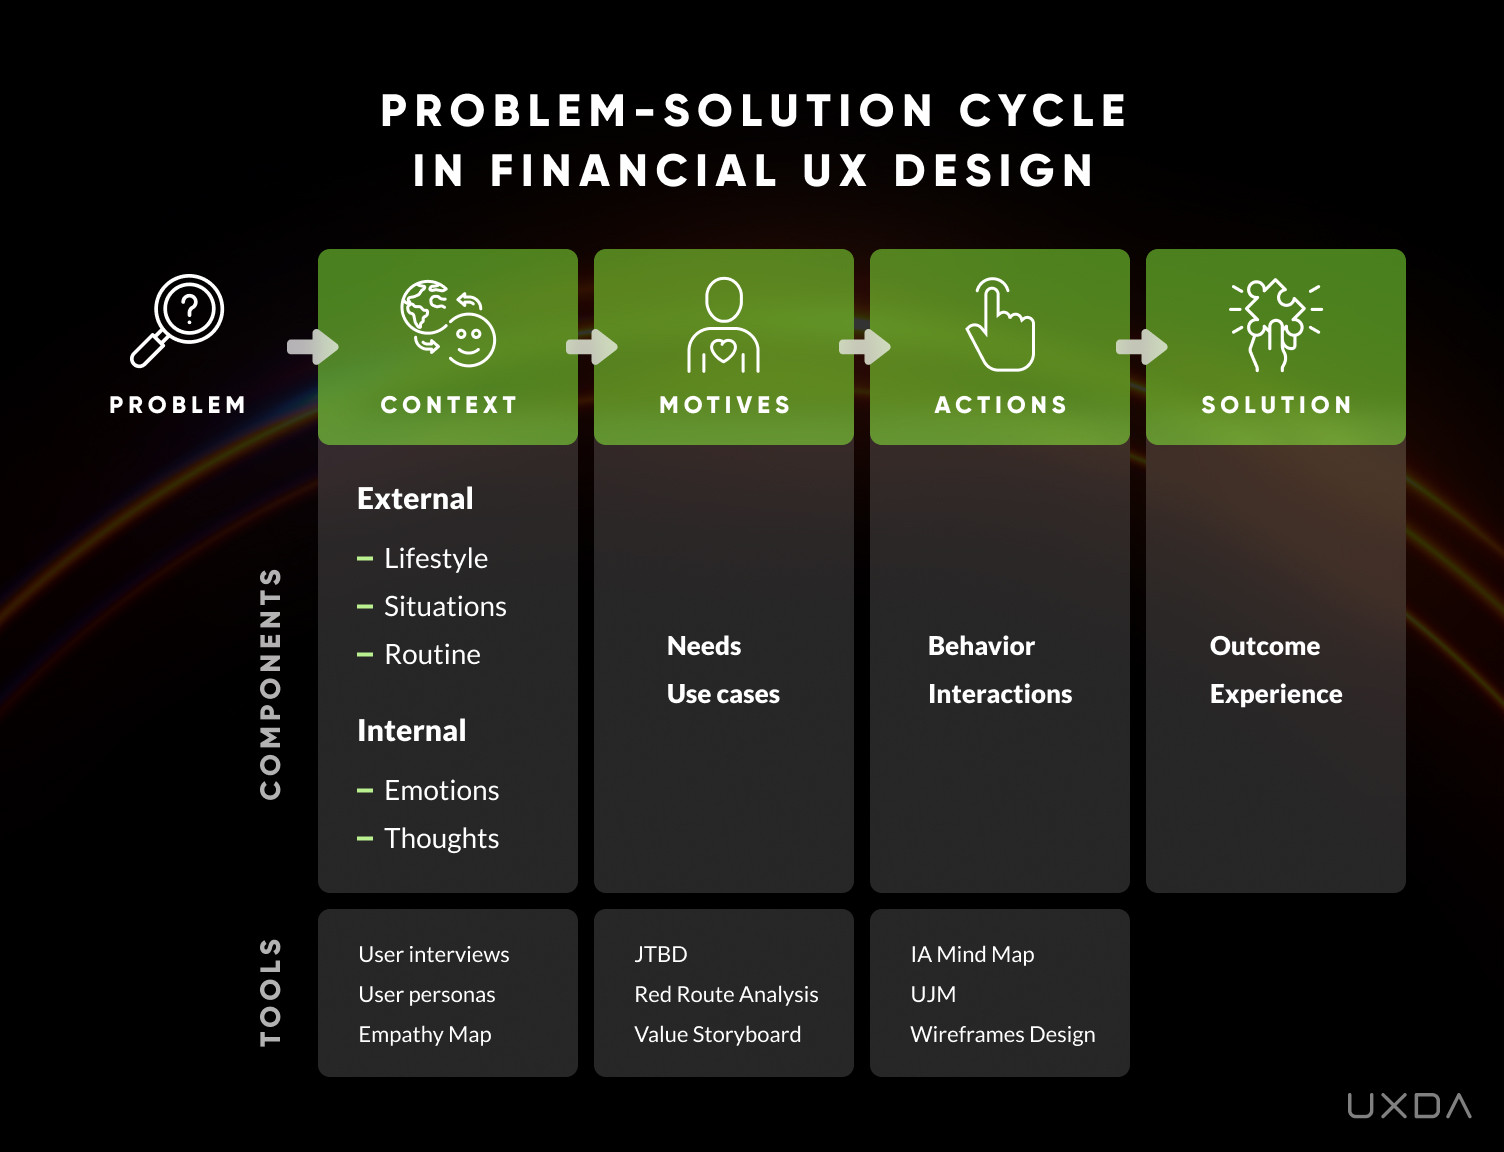 Exceptional Banking & Fintech Product UX Design with Soul - Problem Solution Cycle